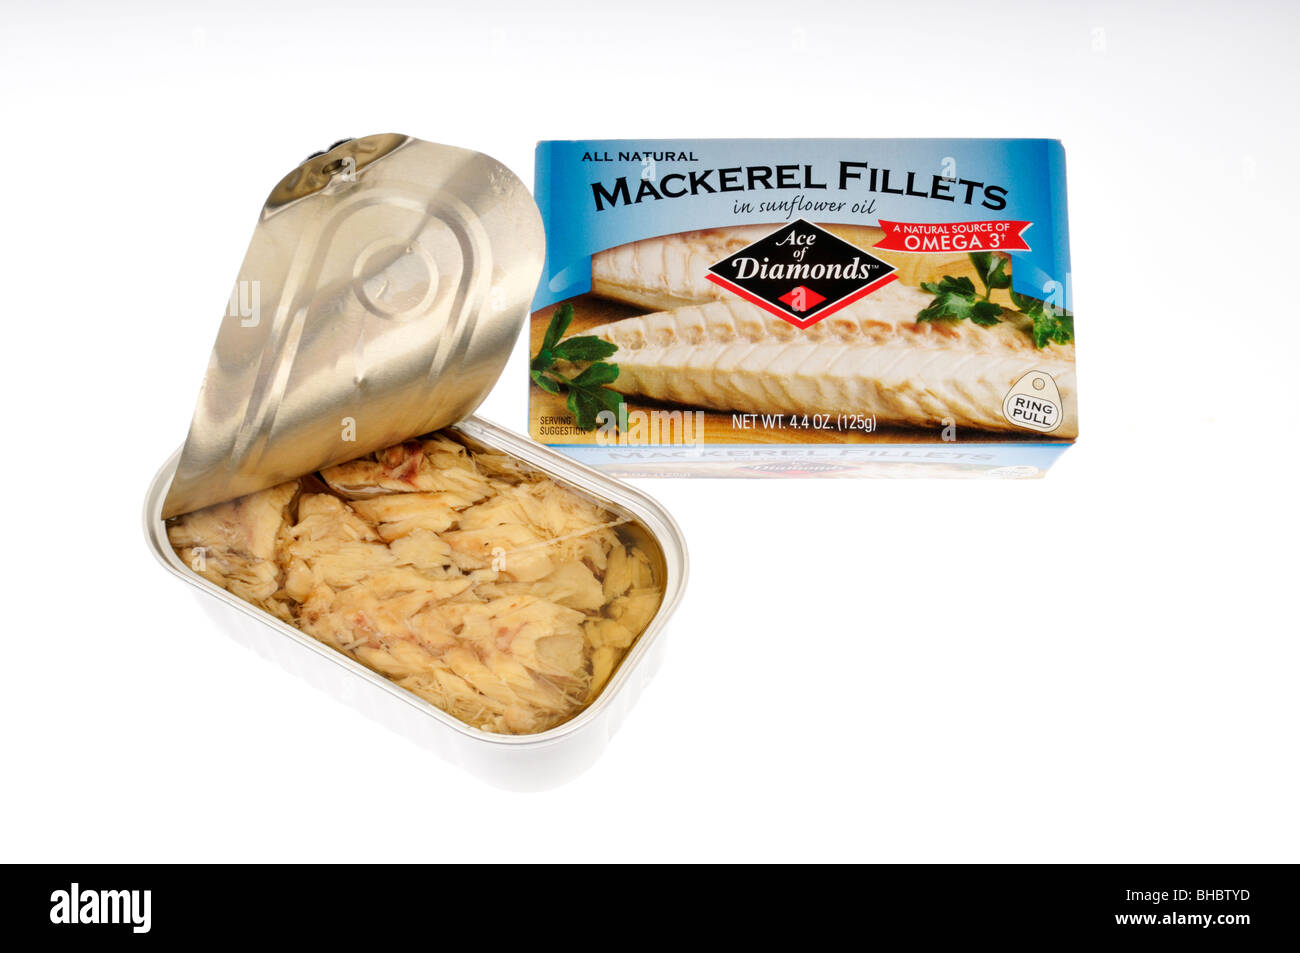 Open tin of mackerel fillets in safflower oil with packaging on white background. - Stock Image